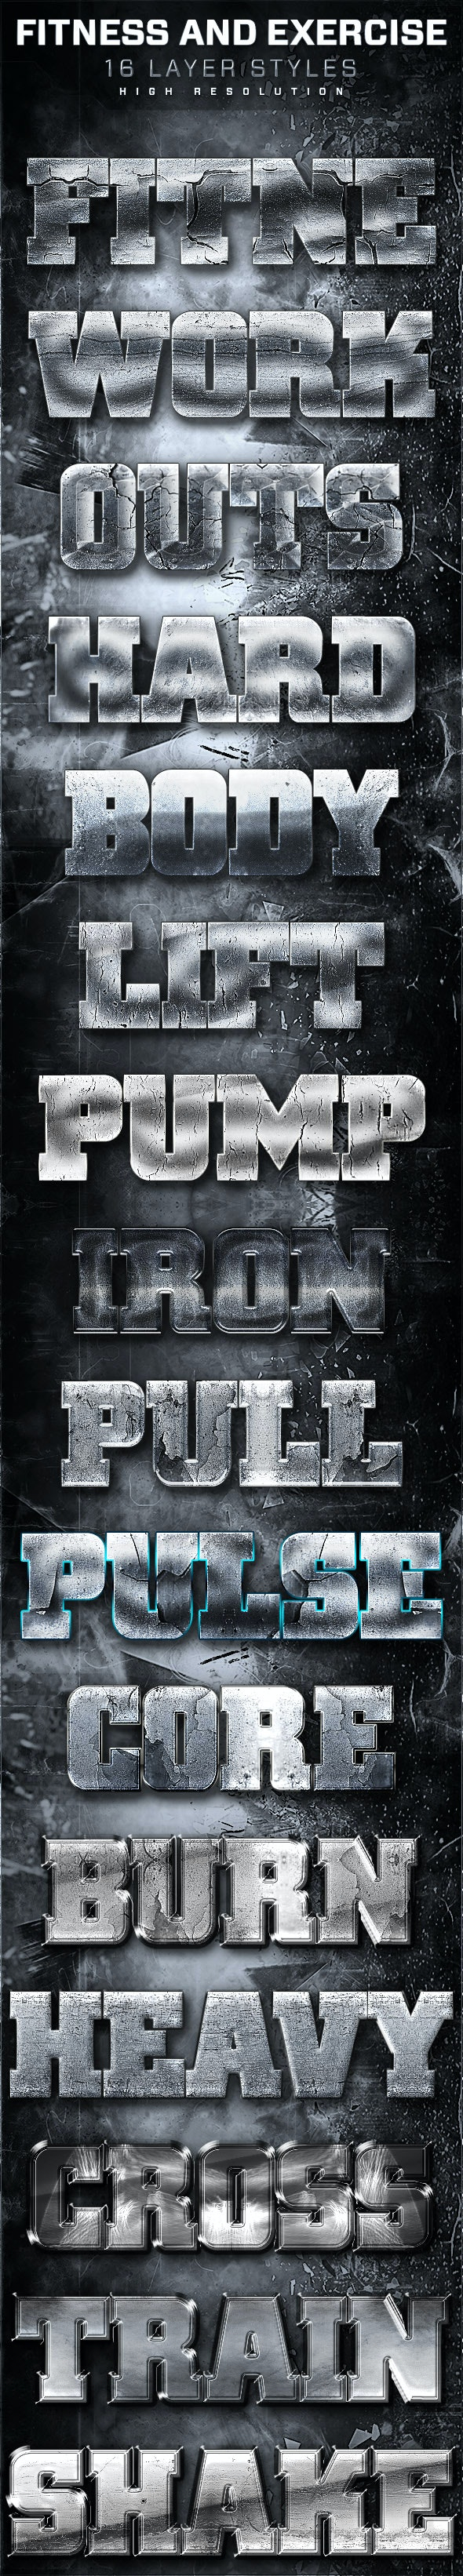 16 Fitness And Exercise Layer Styles 2 - Text Effects Styles